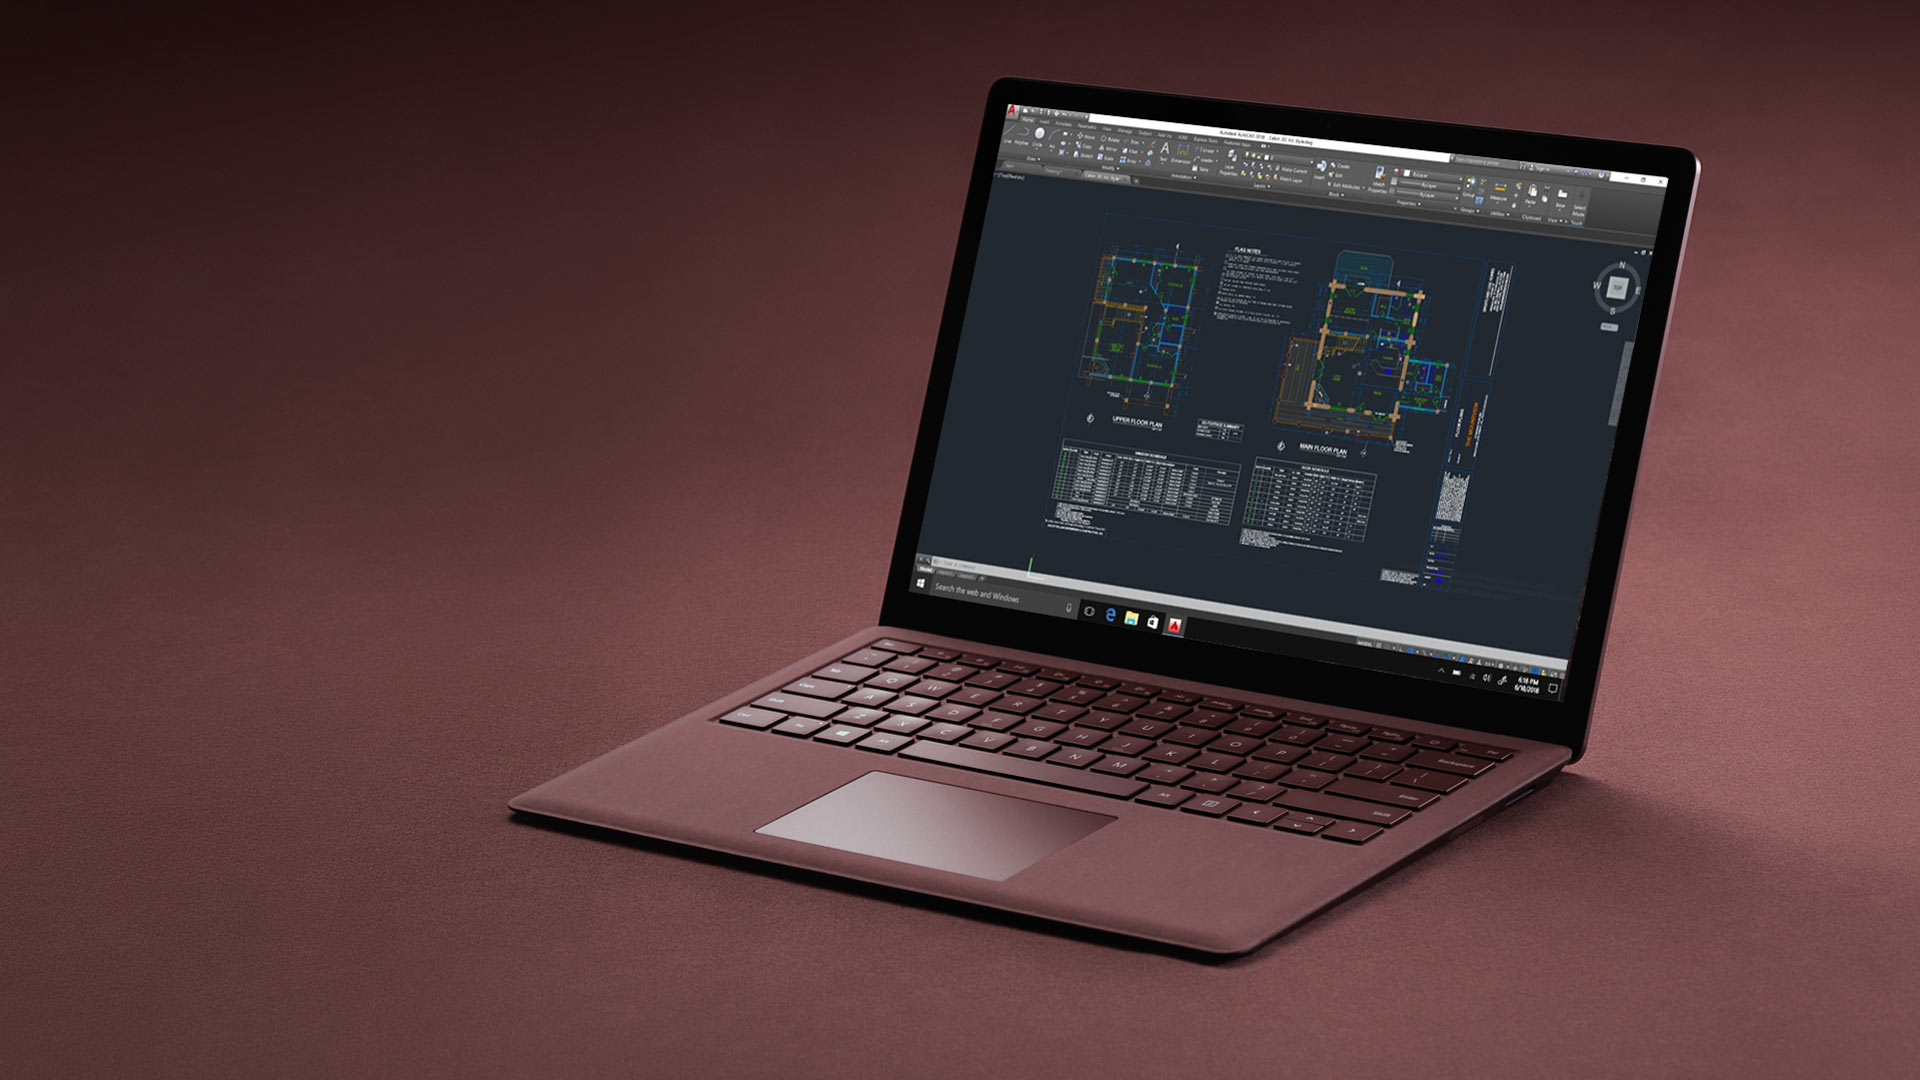 Bordeauxrode Surface Laptop met AutoCAD-scherm.